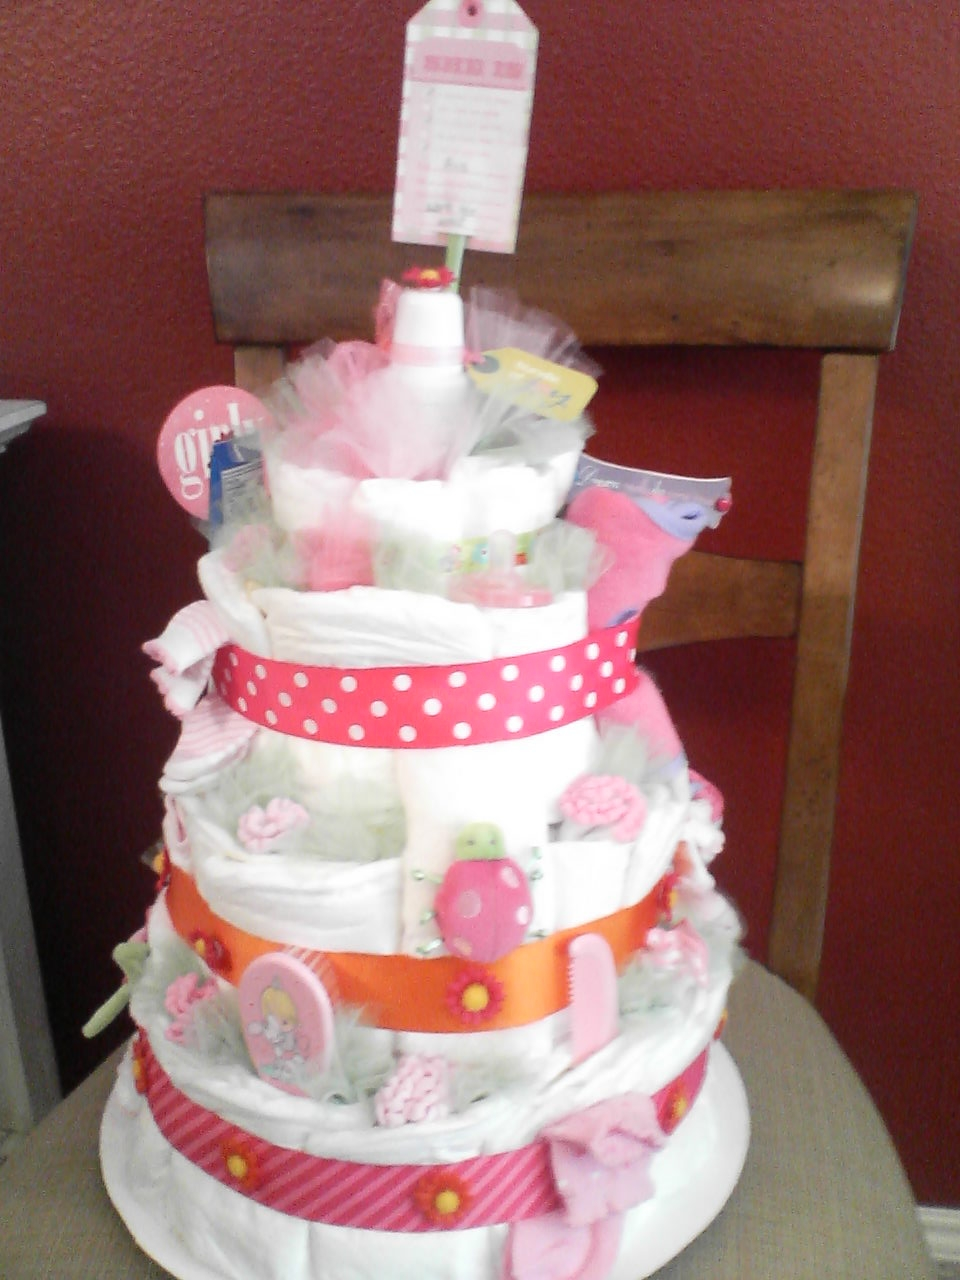 Pamper Party Cake Images : Party with a K...THE BLOG: How to Make a Diaper Cake